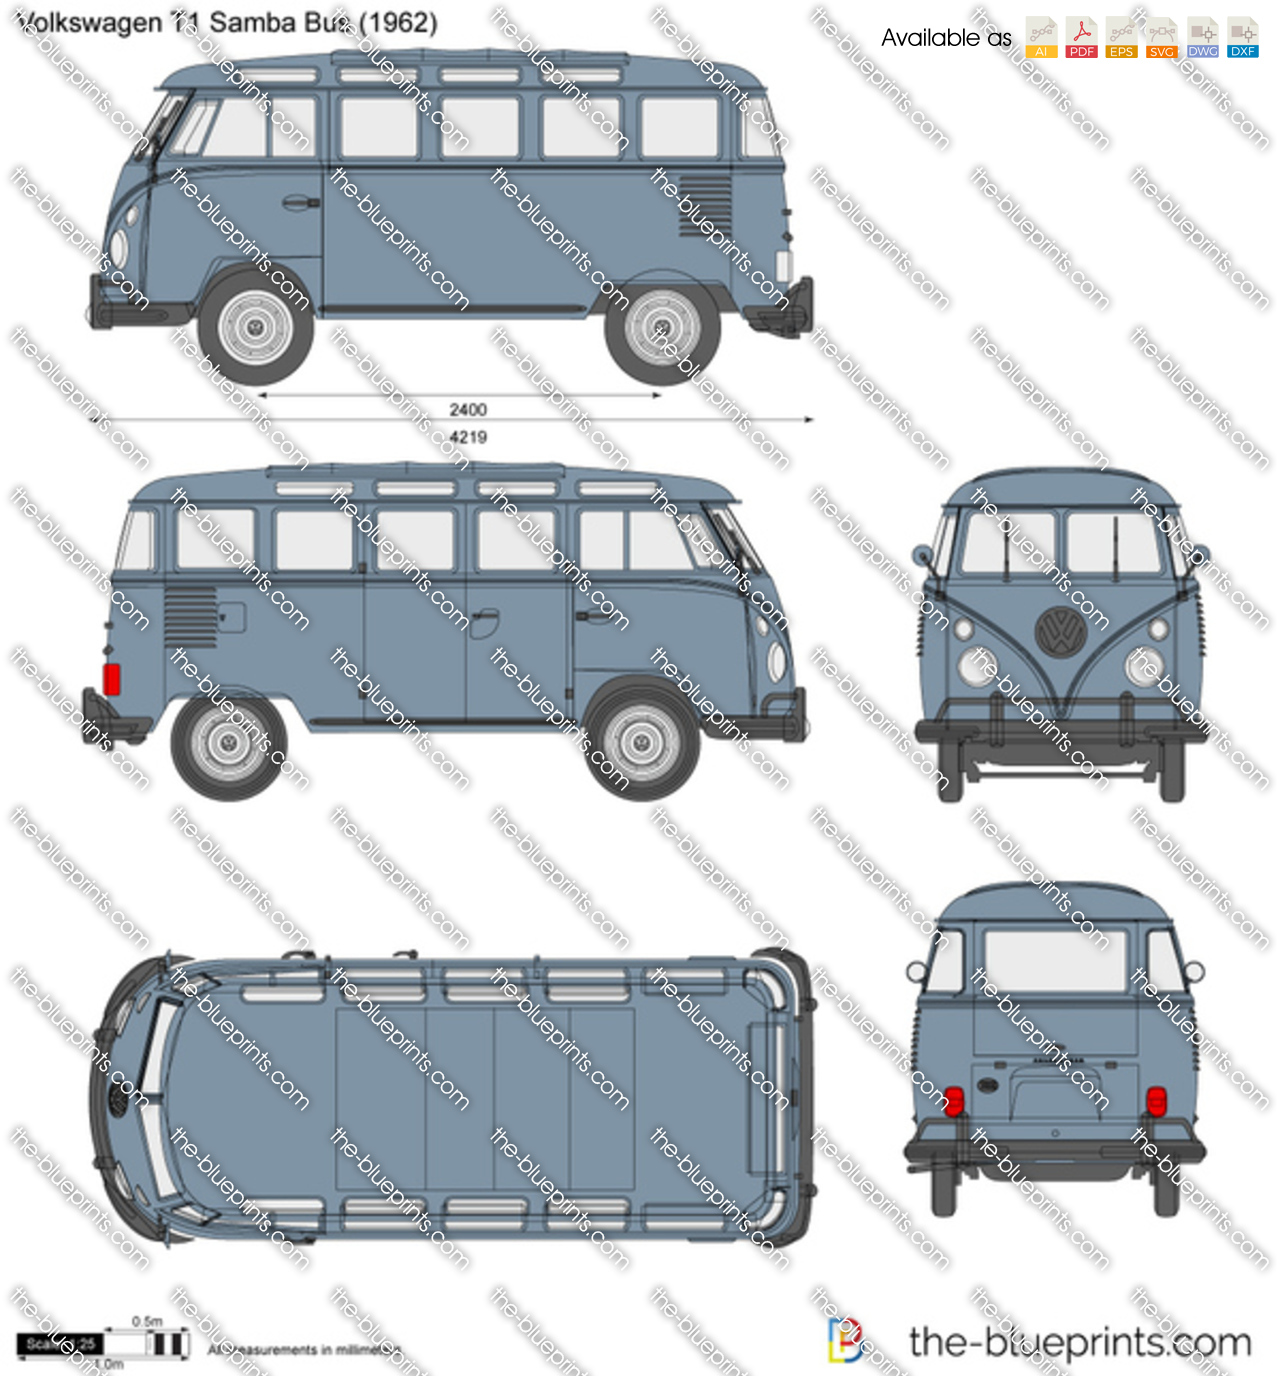 volkswagen t1 samba bus vector drawing. Black Bedroom Furniture Sets. Home Design Ideas